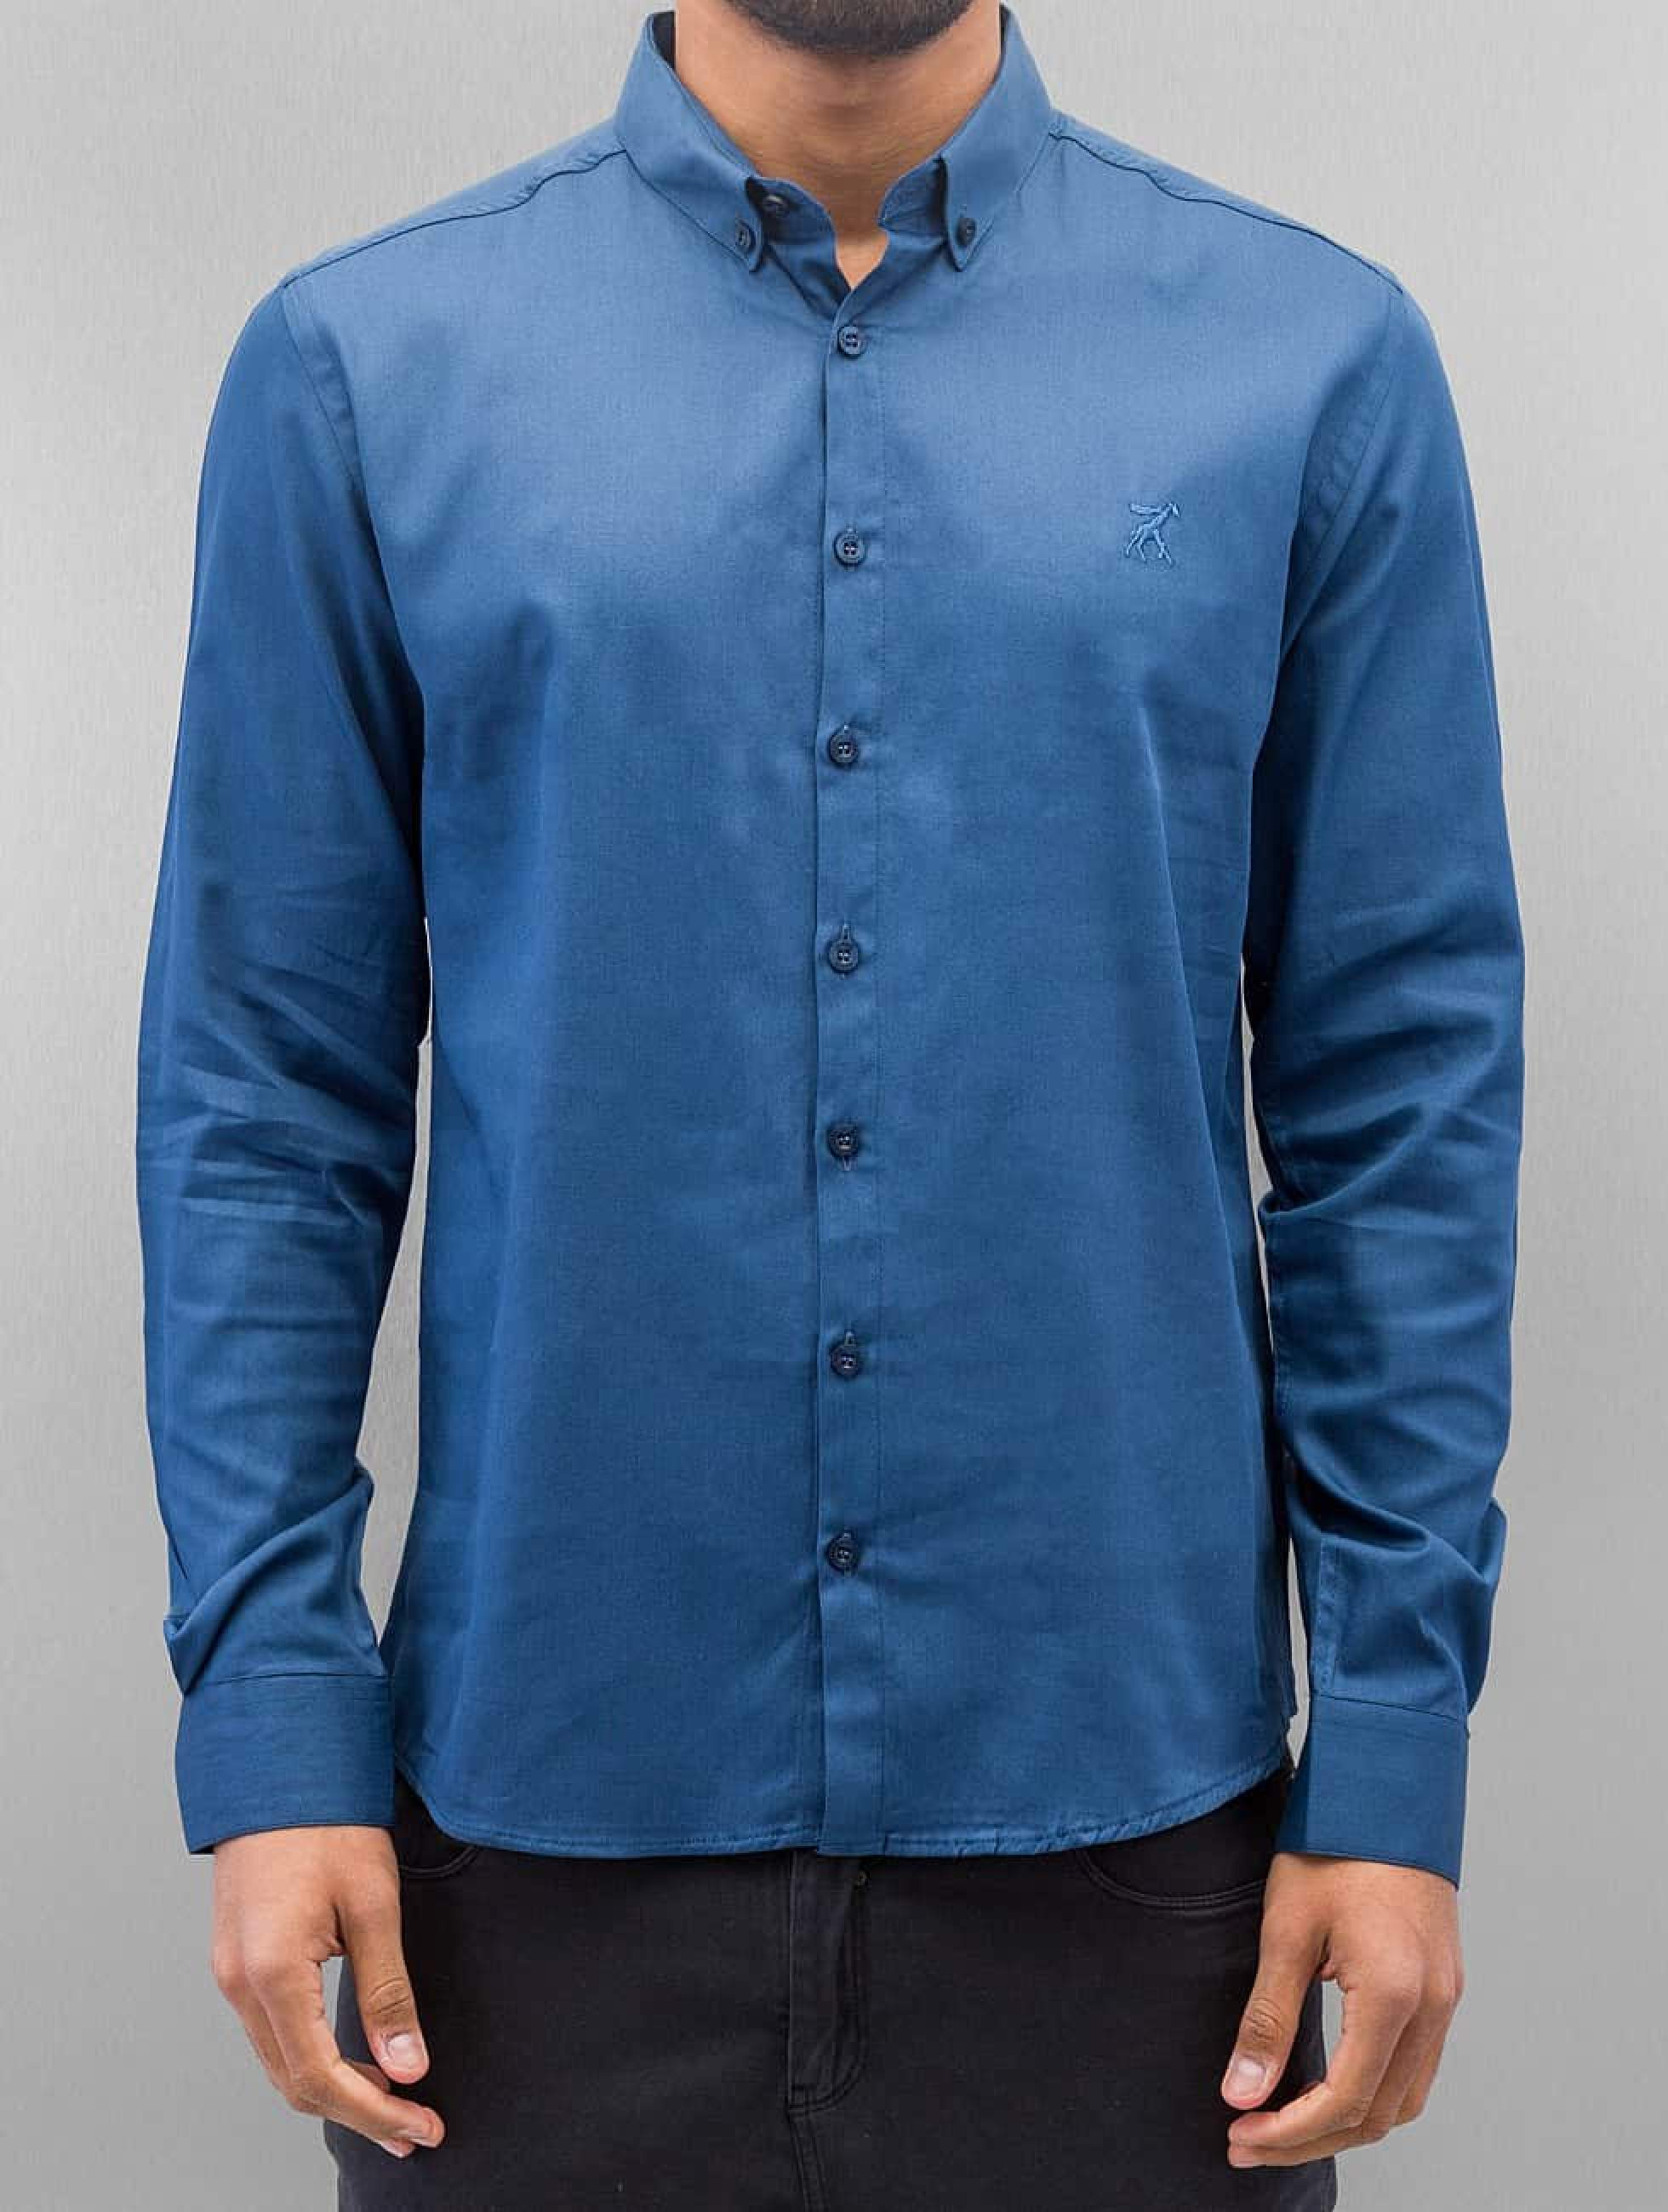 Cazzy Clang / Shirt Norick in blue XL